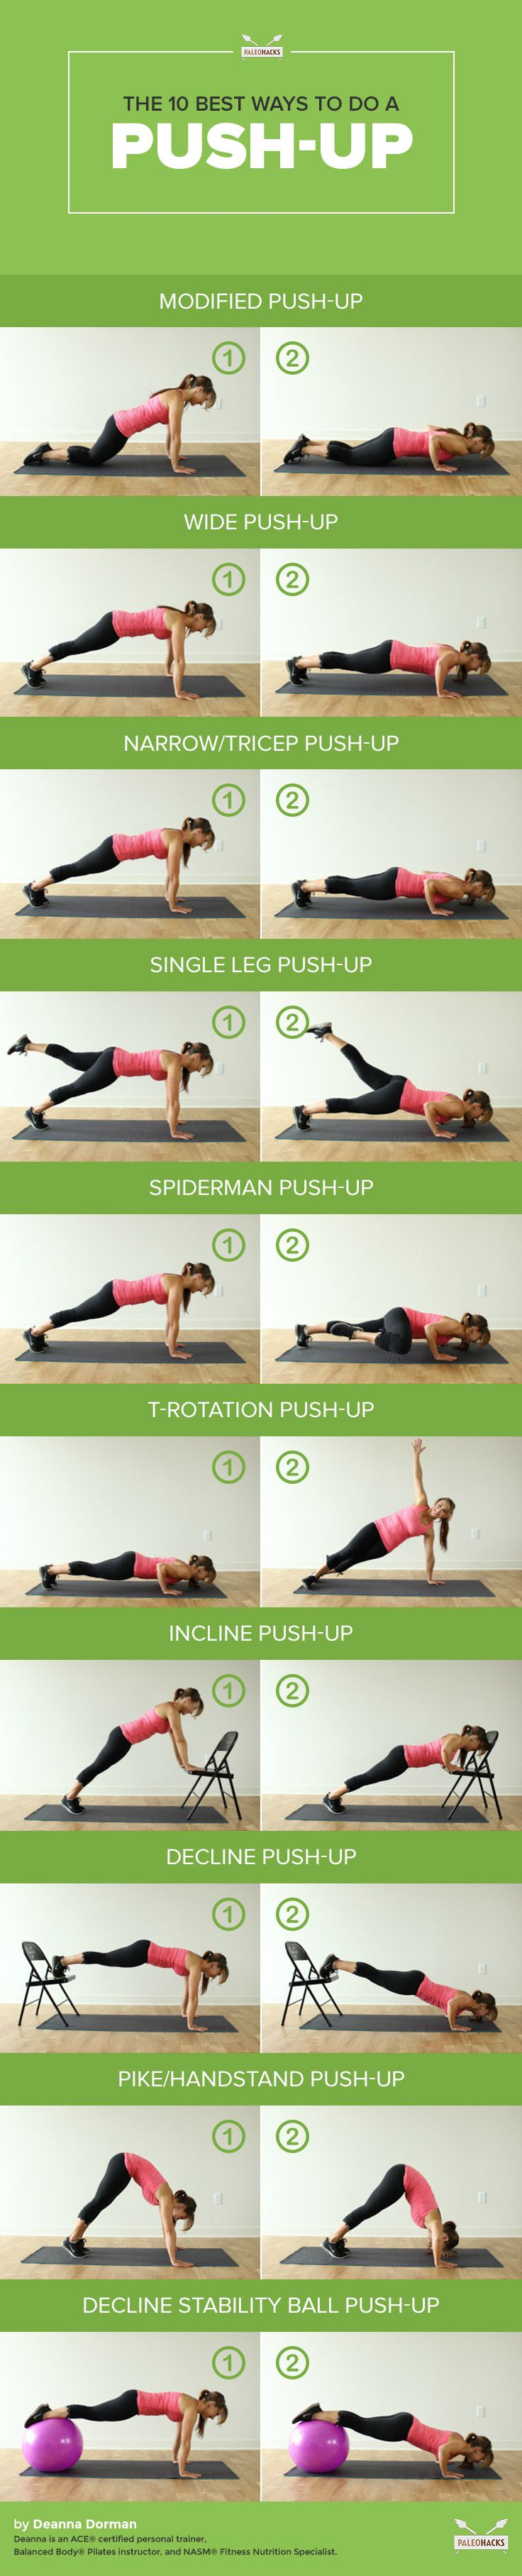 The 10 Best Ways To Do a Push-Up